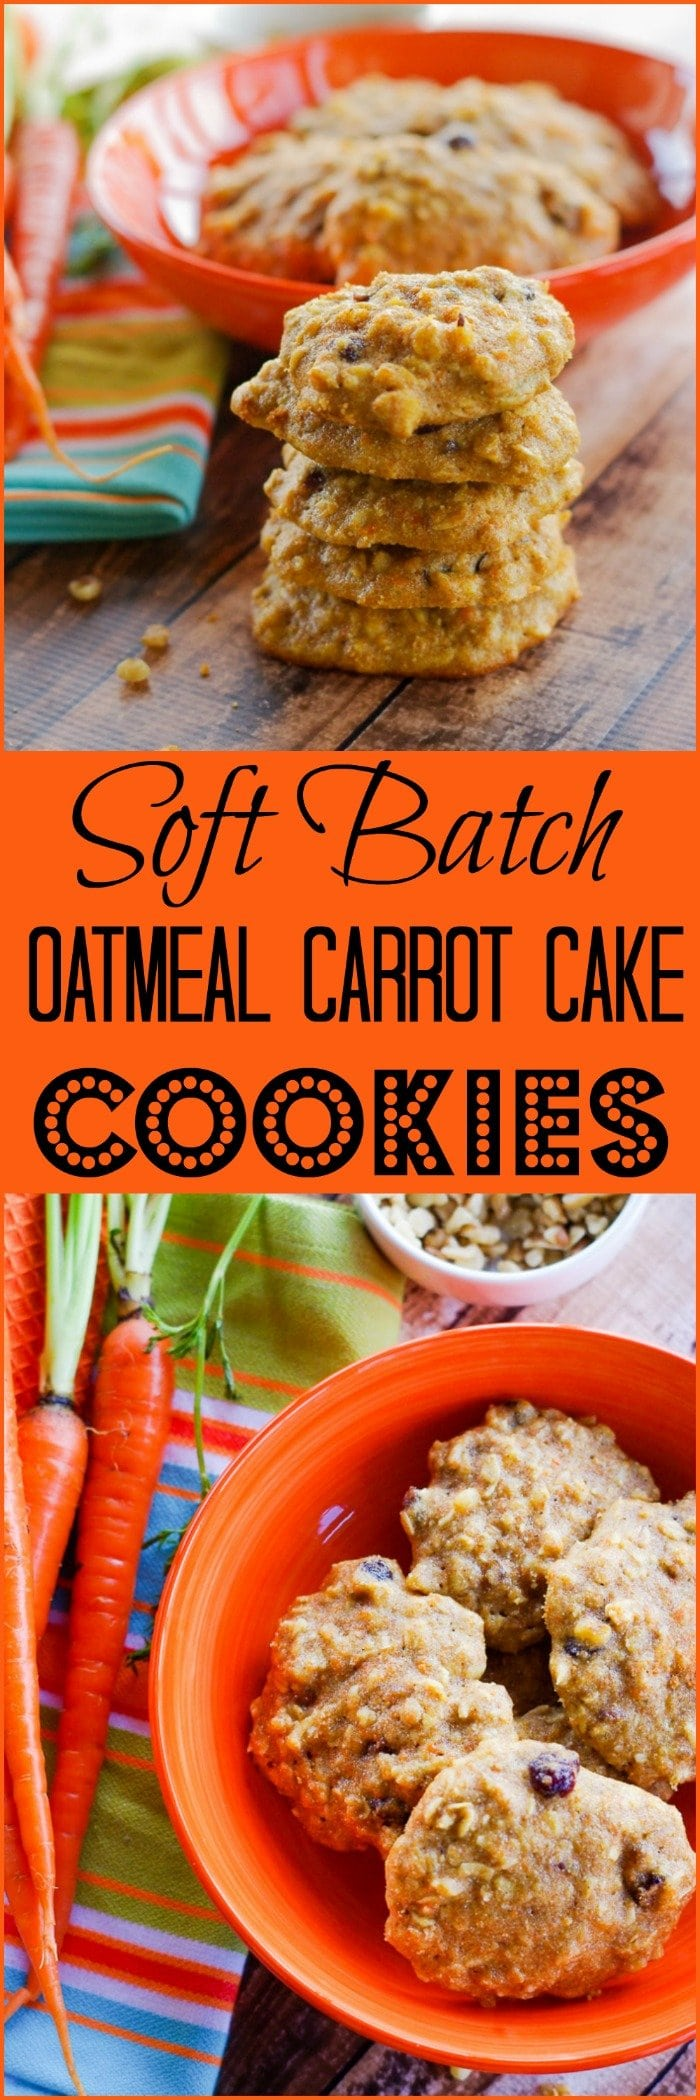 Soft Batch Oatmeal Carrot Cake Cookies | www.homeandplate.com | They